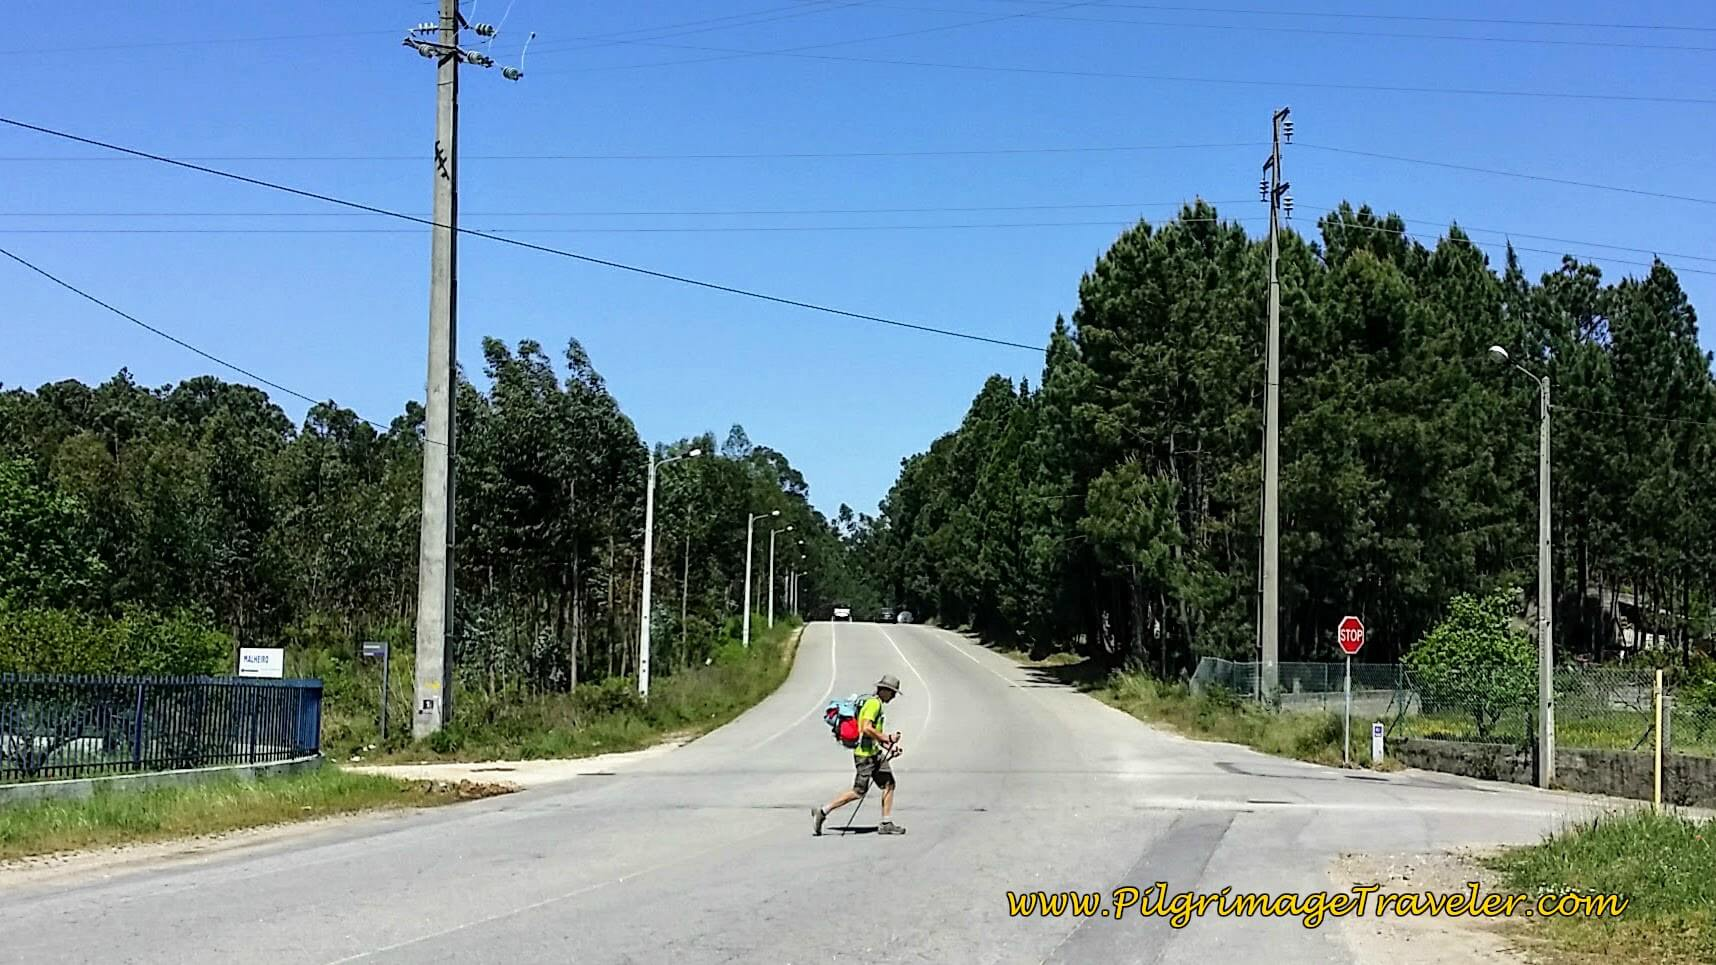 Crossing the Industrial Road to the Rua Estrada Real on the Portuguese Way